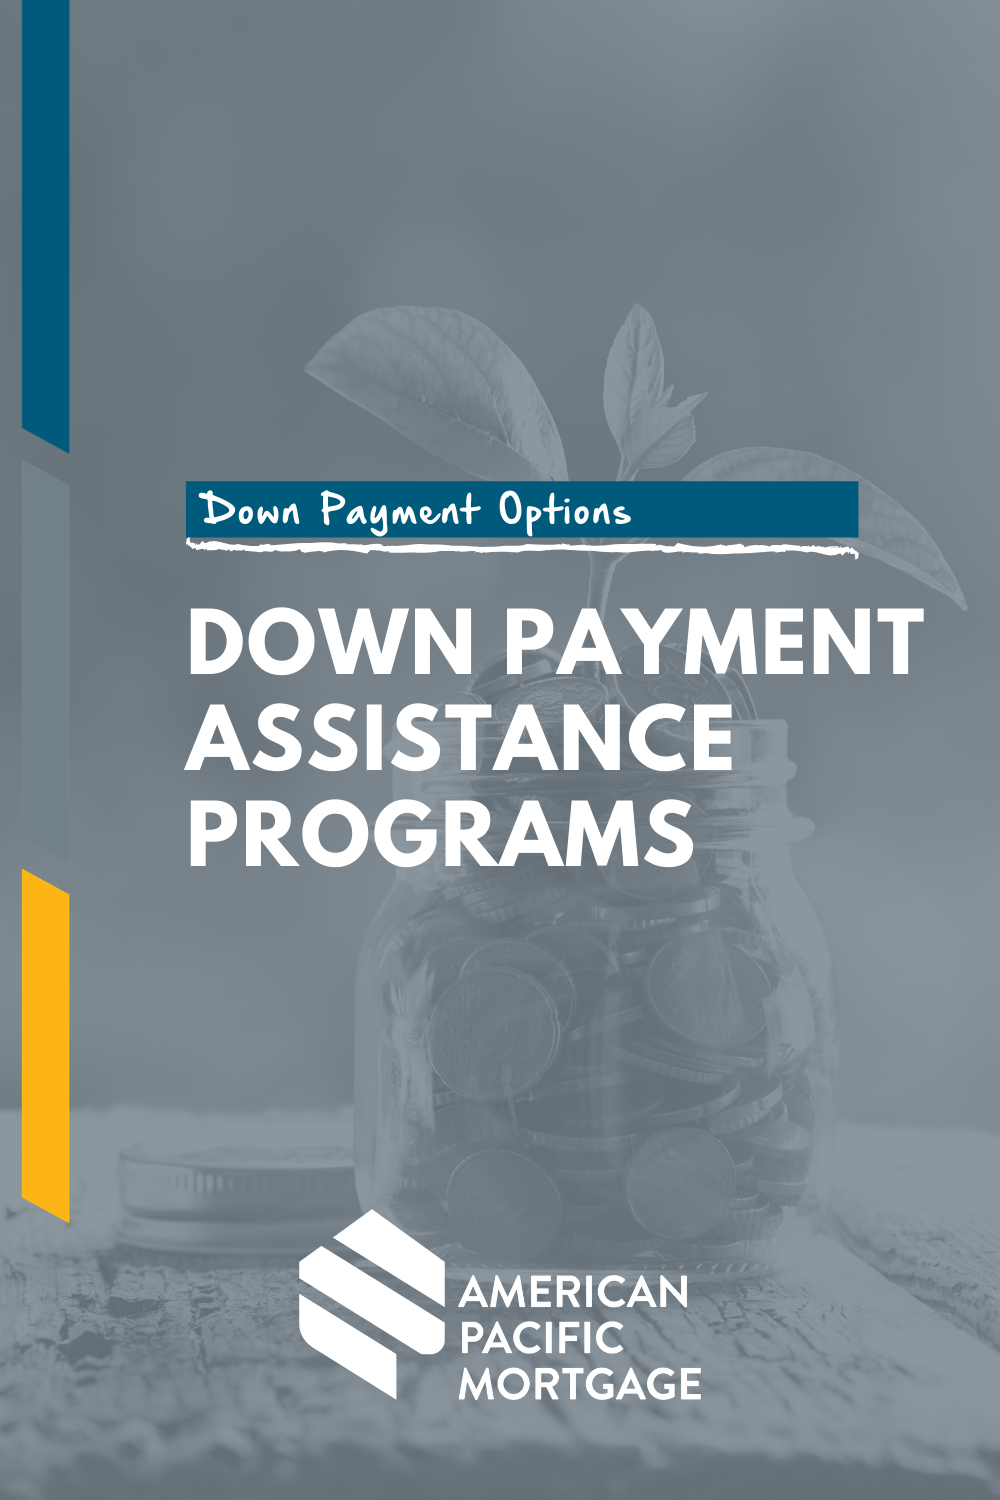 Down Payment Assistance Programs in 2020 | Down payment ...